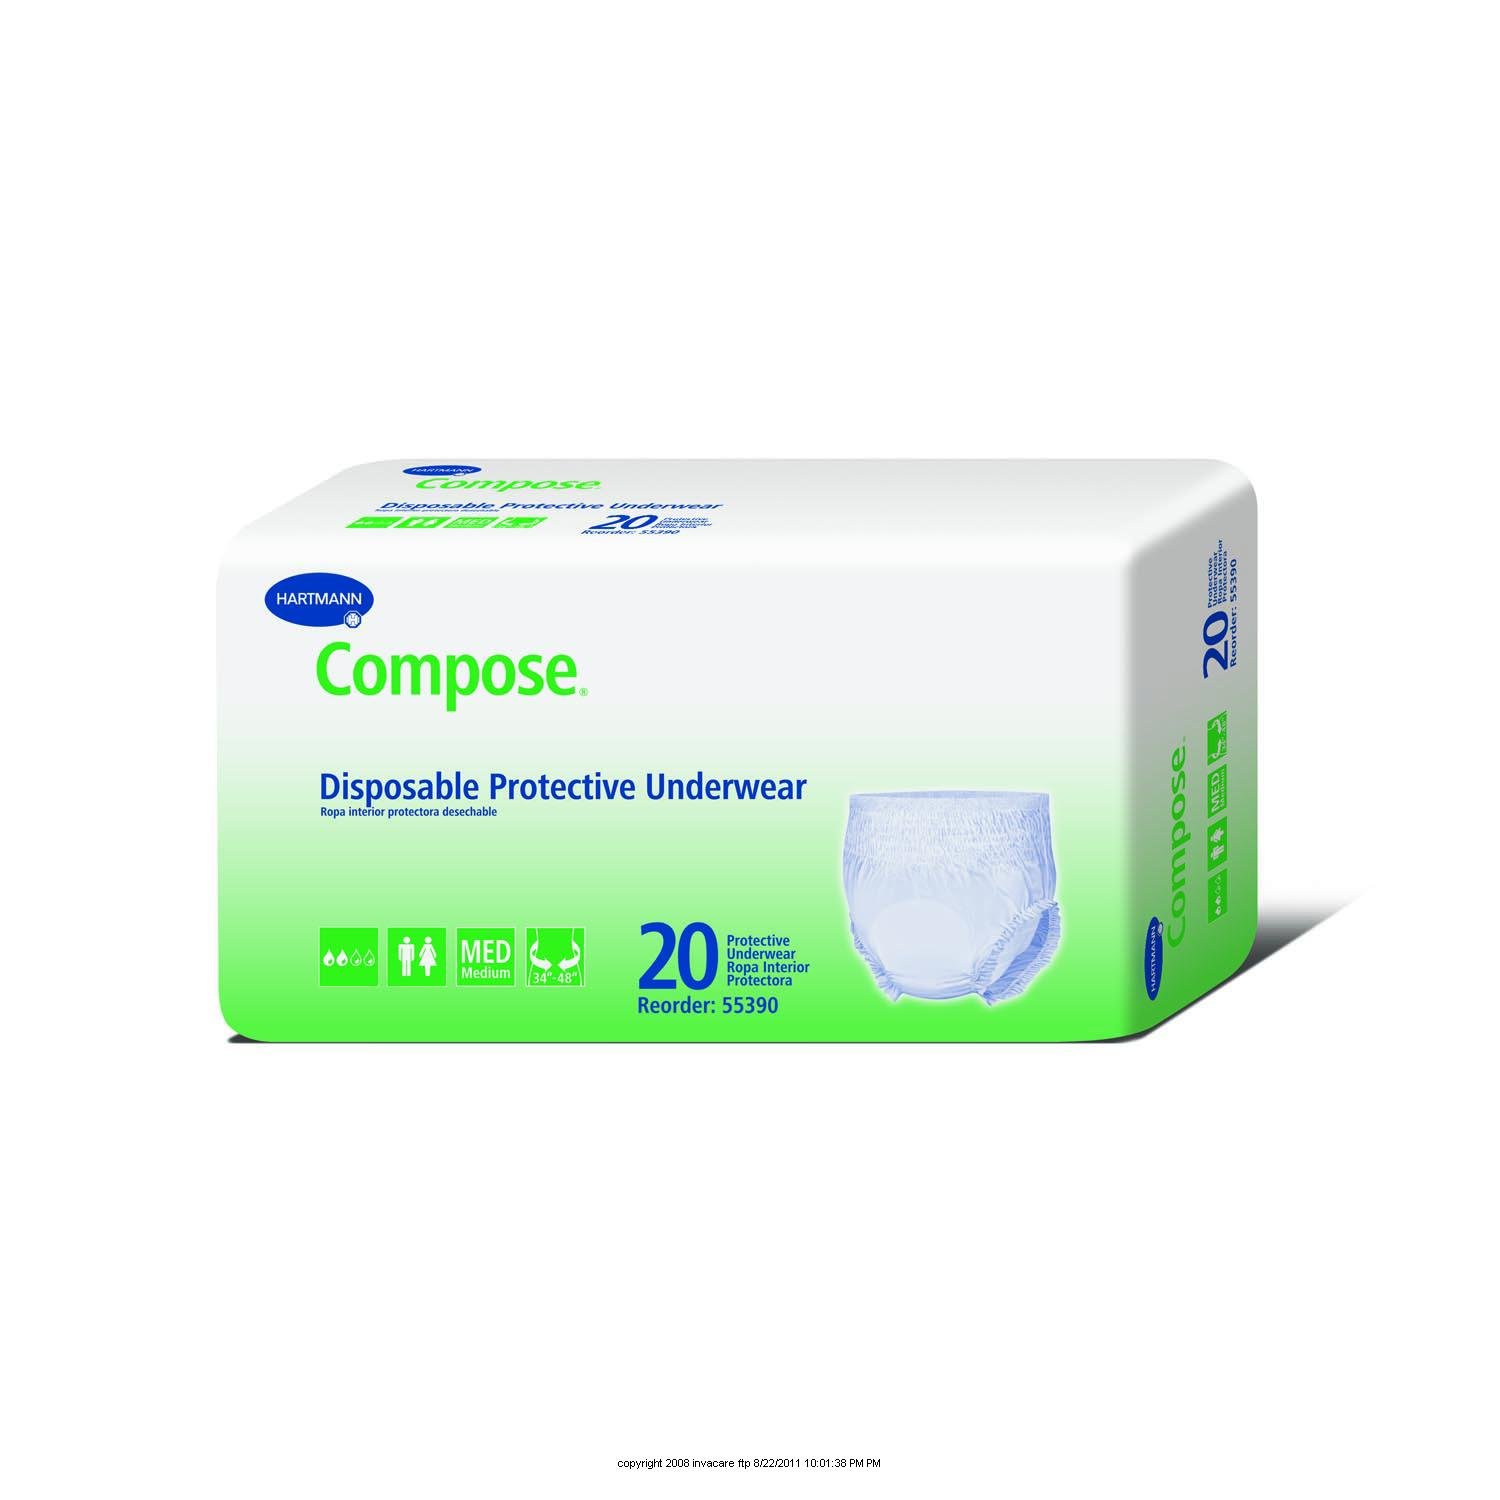 Amazon.com: Compose Disposable Protective Underwear For Moderate Protection-(1 CASE, 80 EACH): Health & Personal Care